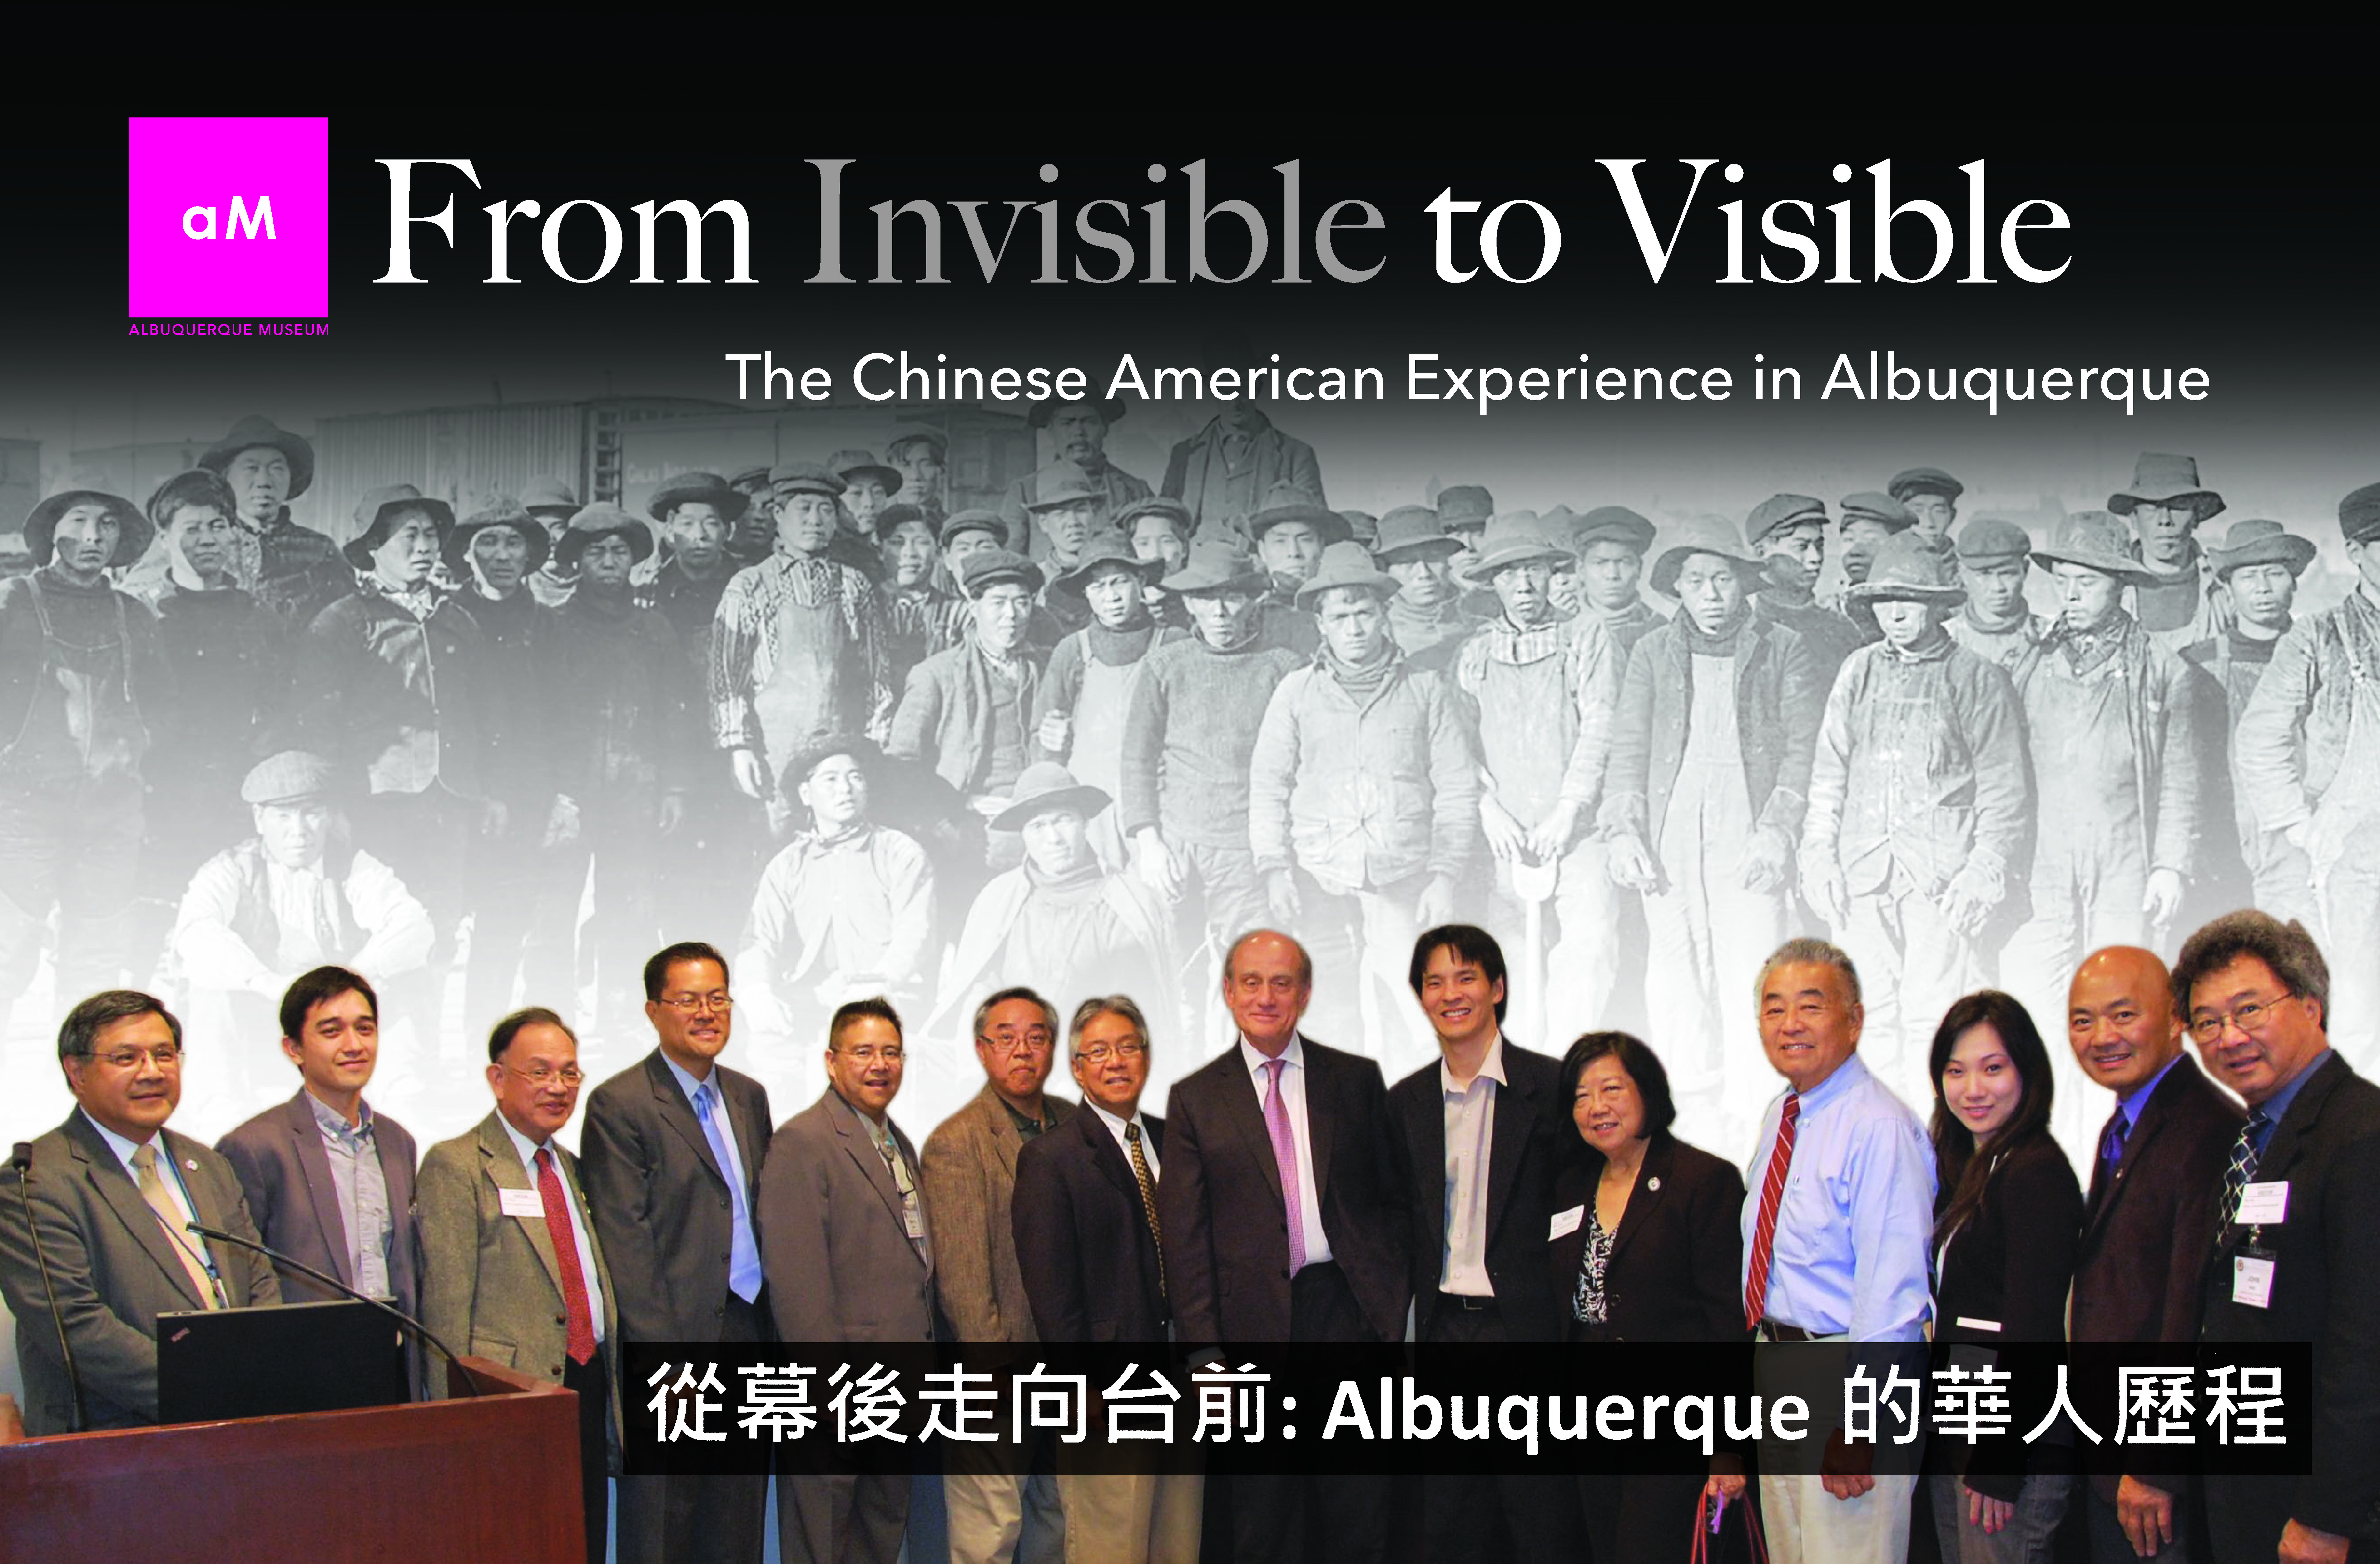 From Invisible to Visible postcard